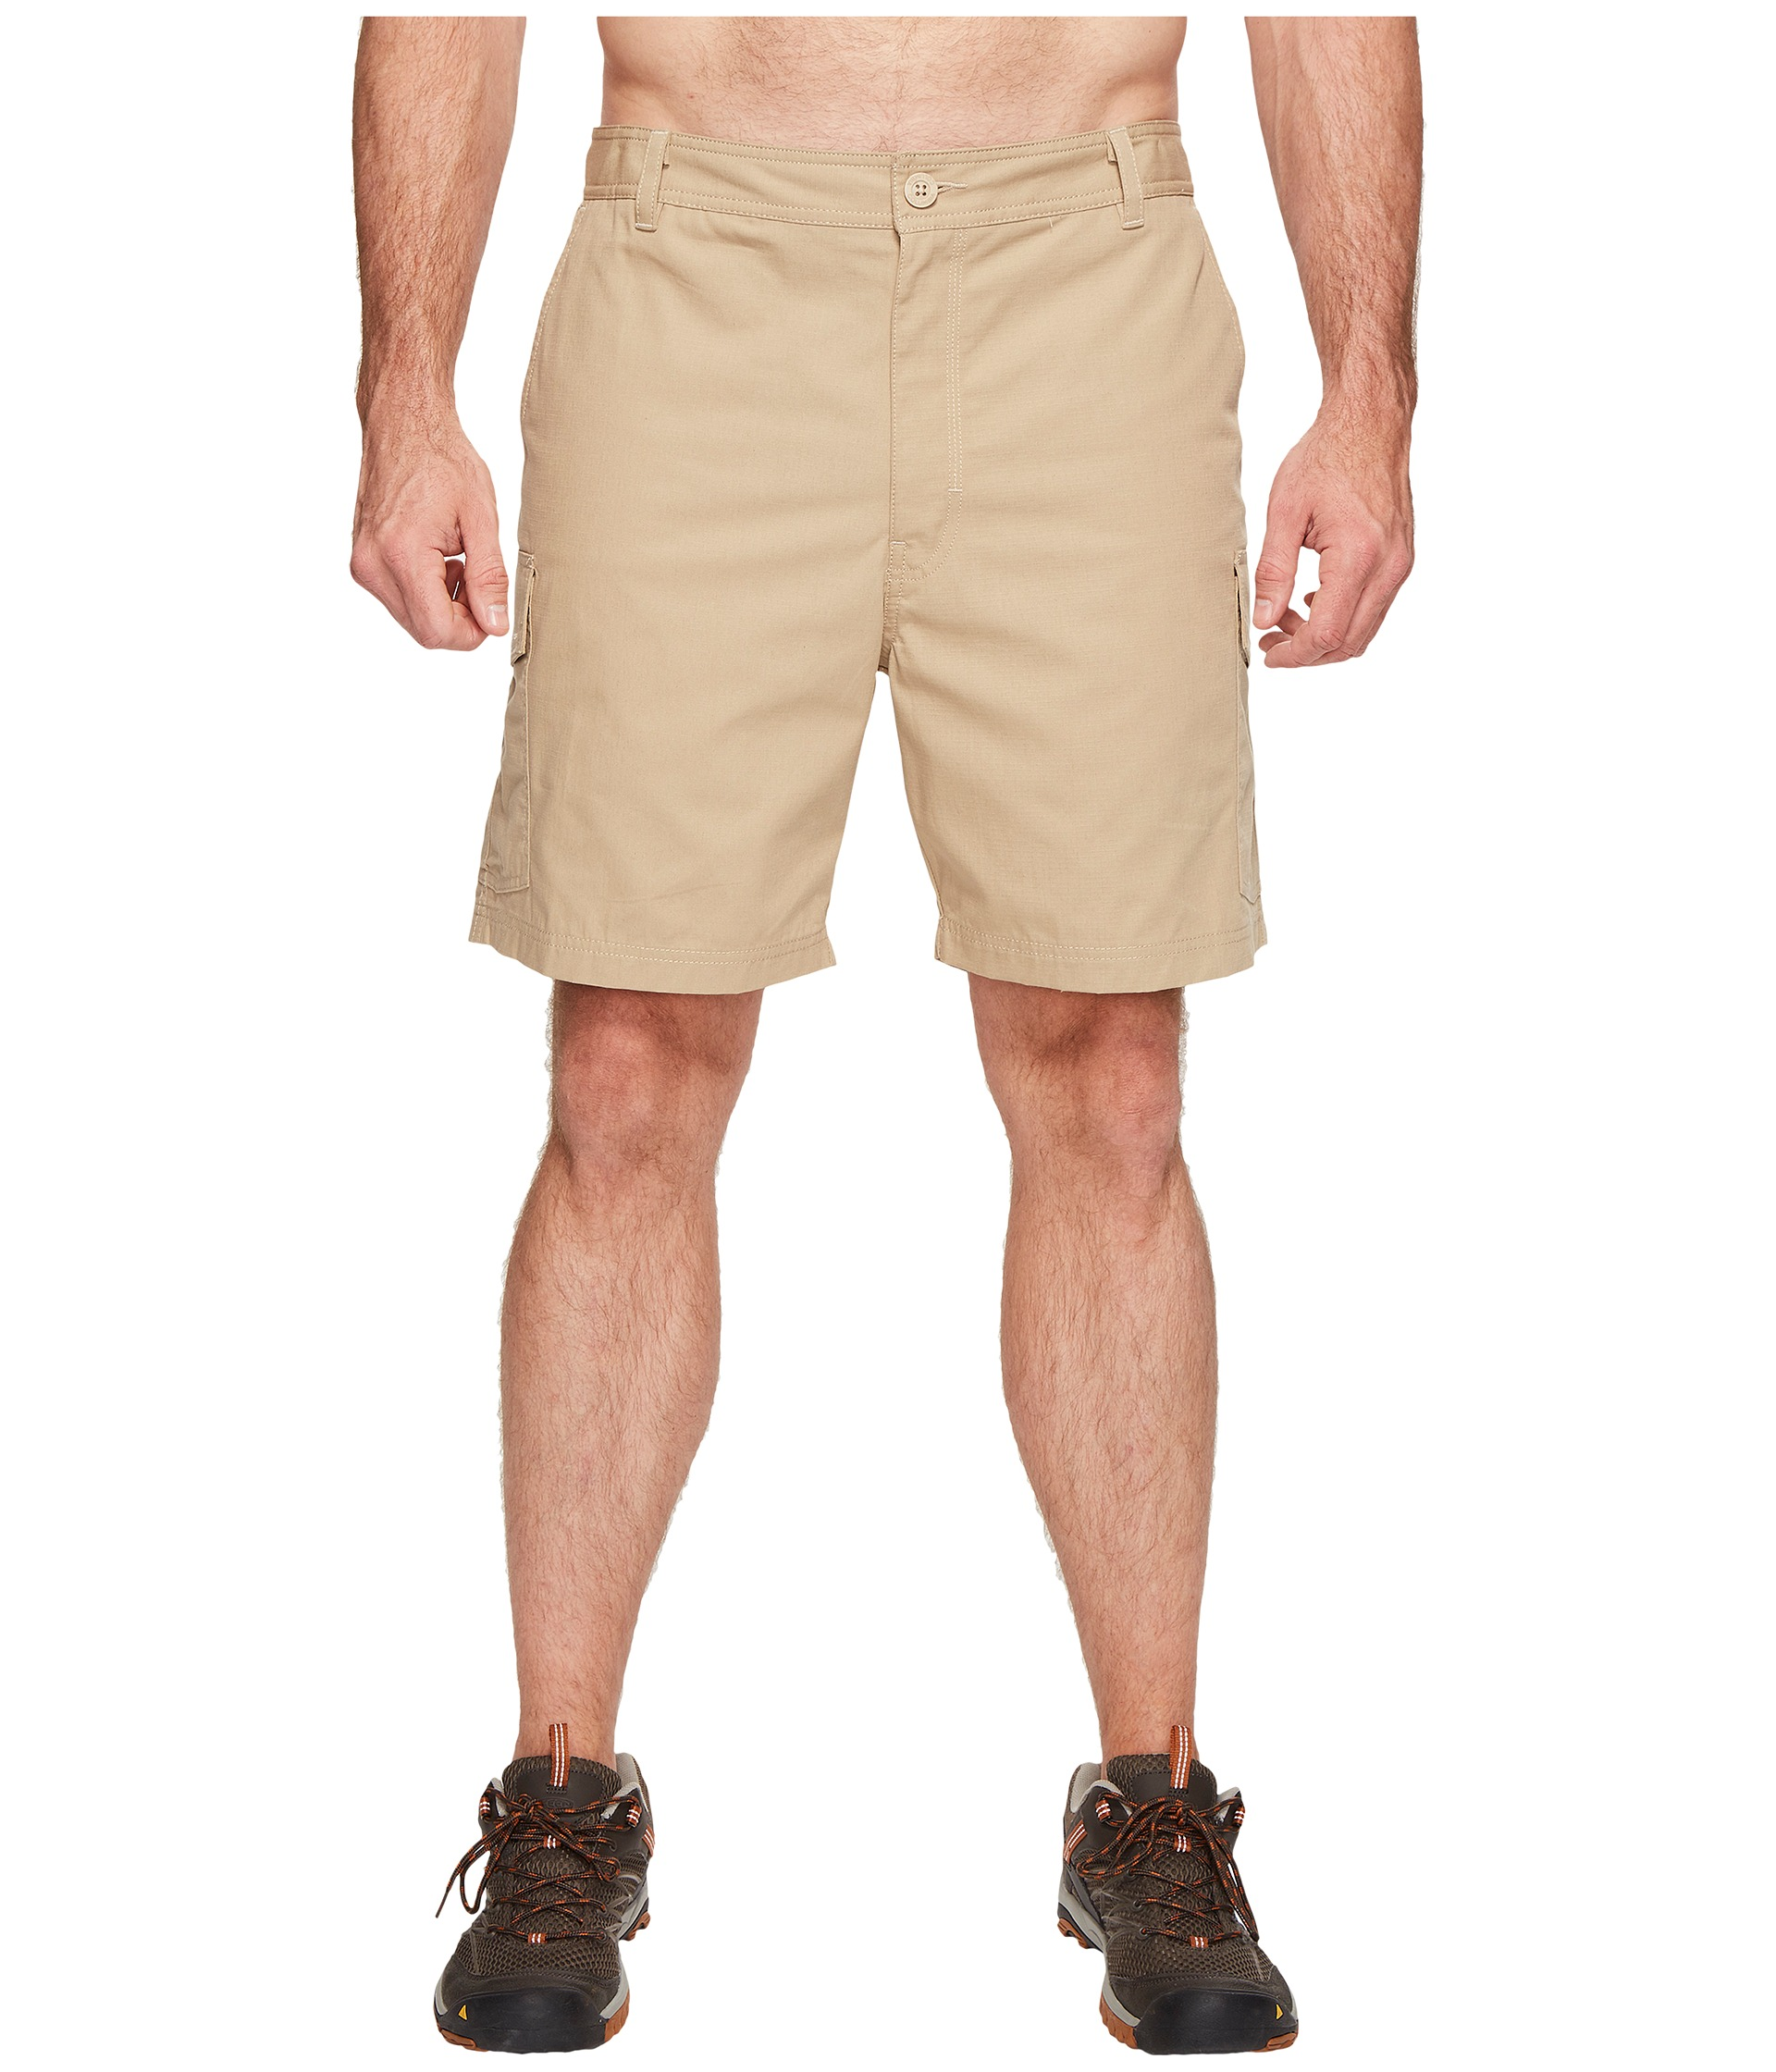 BIG AND TALL SHORTS. Big and tall shorts are the perfect way to keep your cool while looking your best. The key to wearing shorts is to match them to the occasion. Exercising? Try an athletic pair. Boating? Slip on some swim trunks. Weekend barbeque? Grab a pair of cargos.